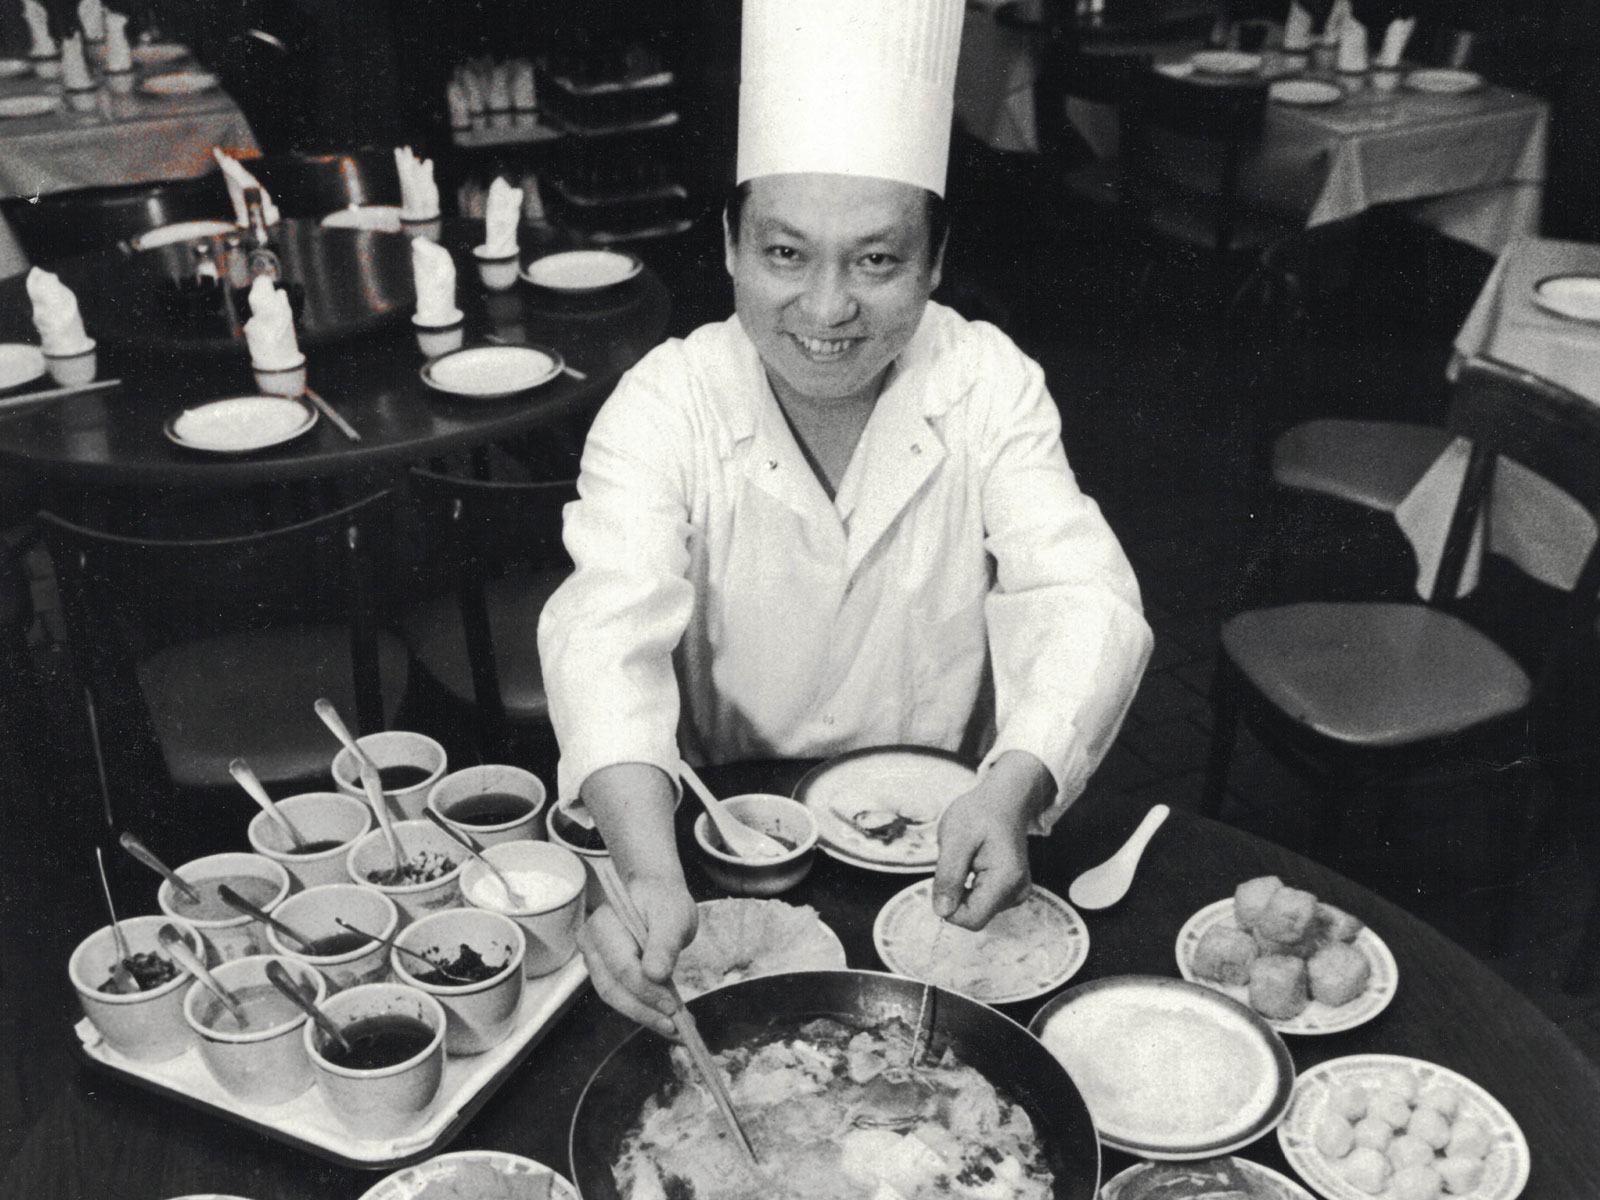 The Peking Duck King of New York Celebrates 40 Years in Business